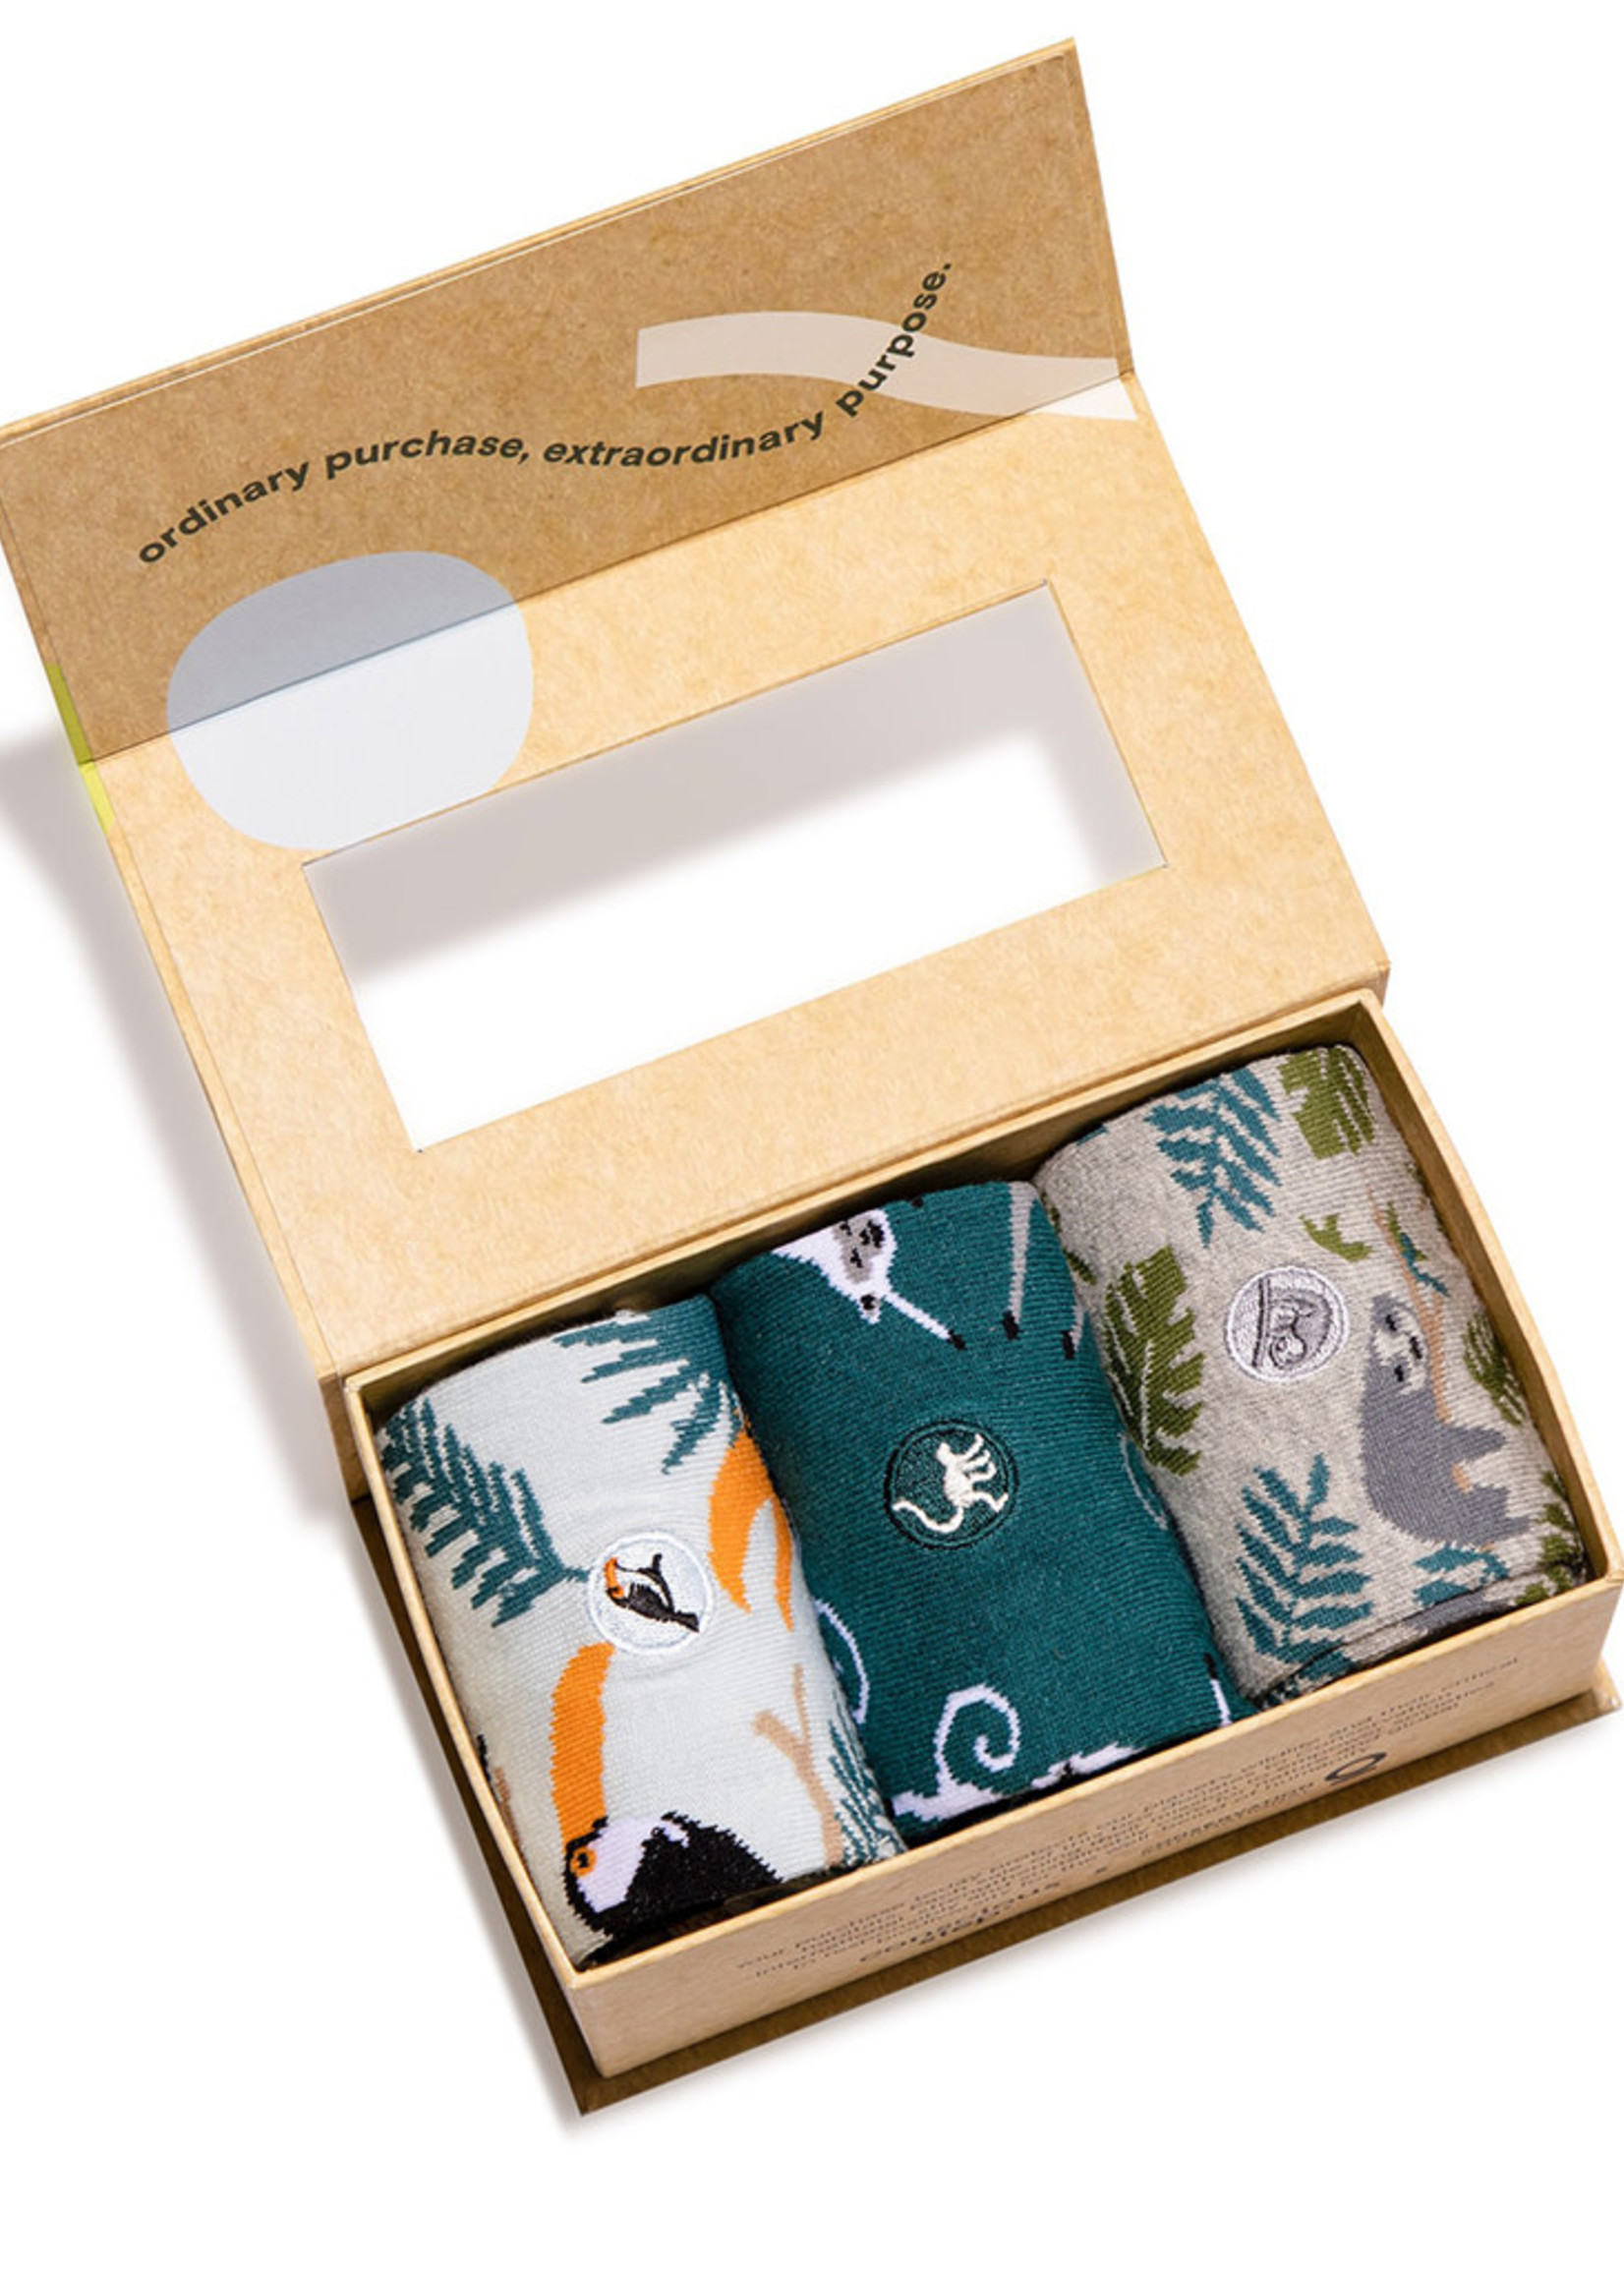 Conscious Step Women's Box of Socks That Protects Rainforest Animals